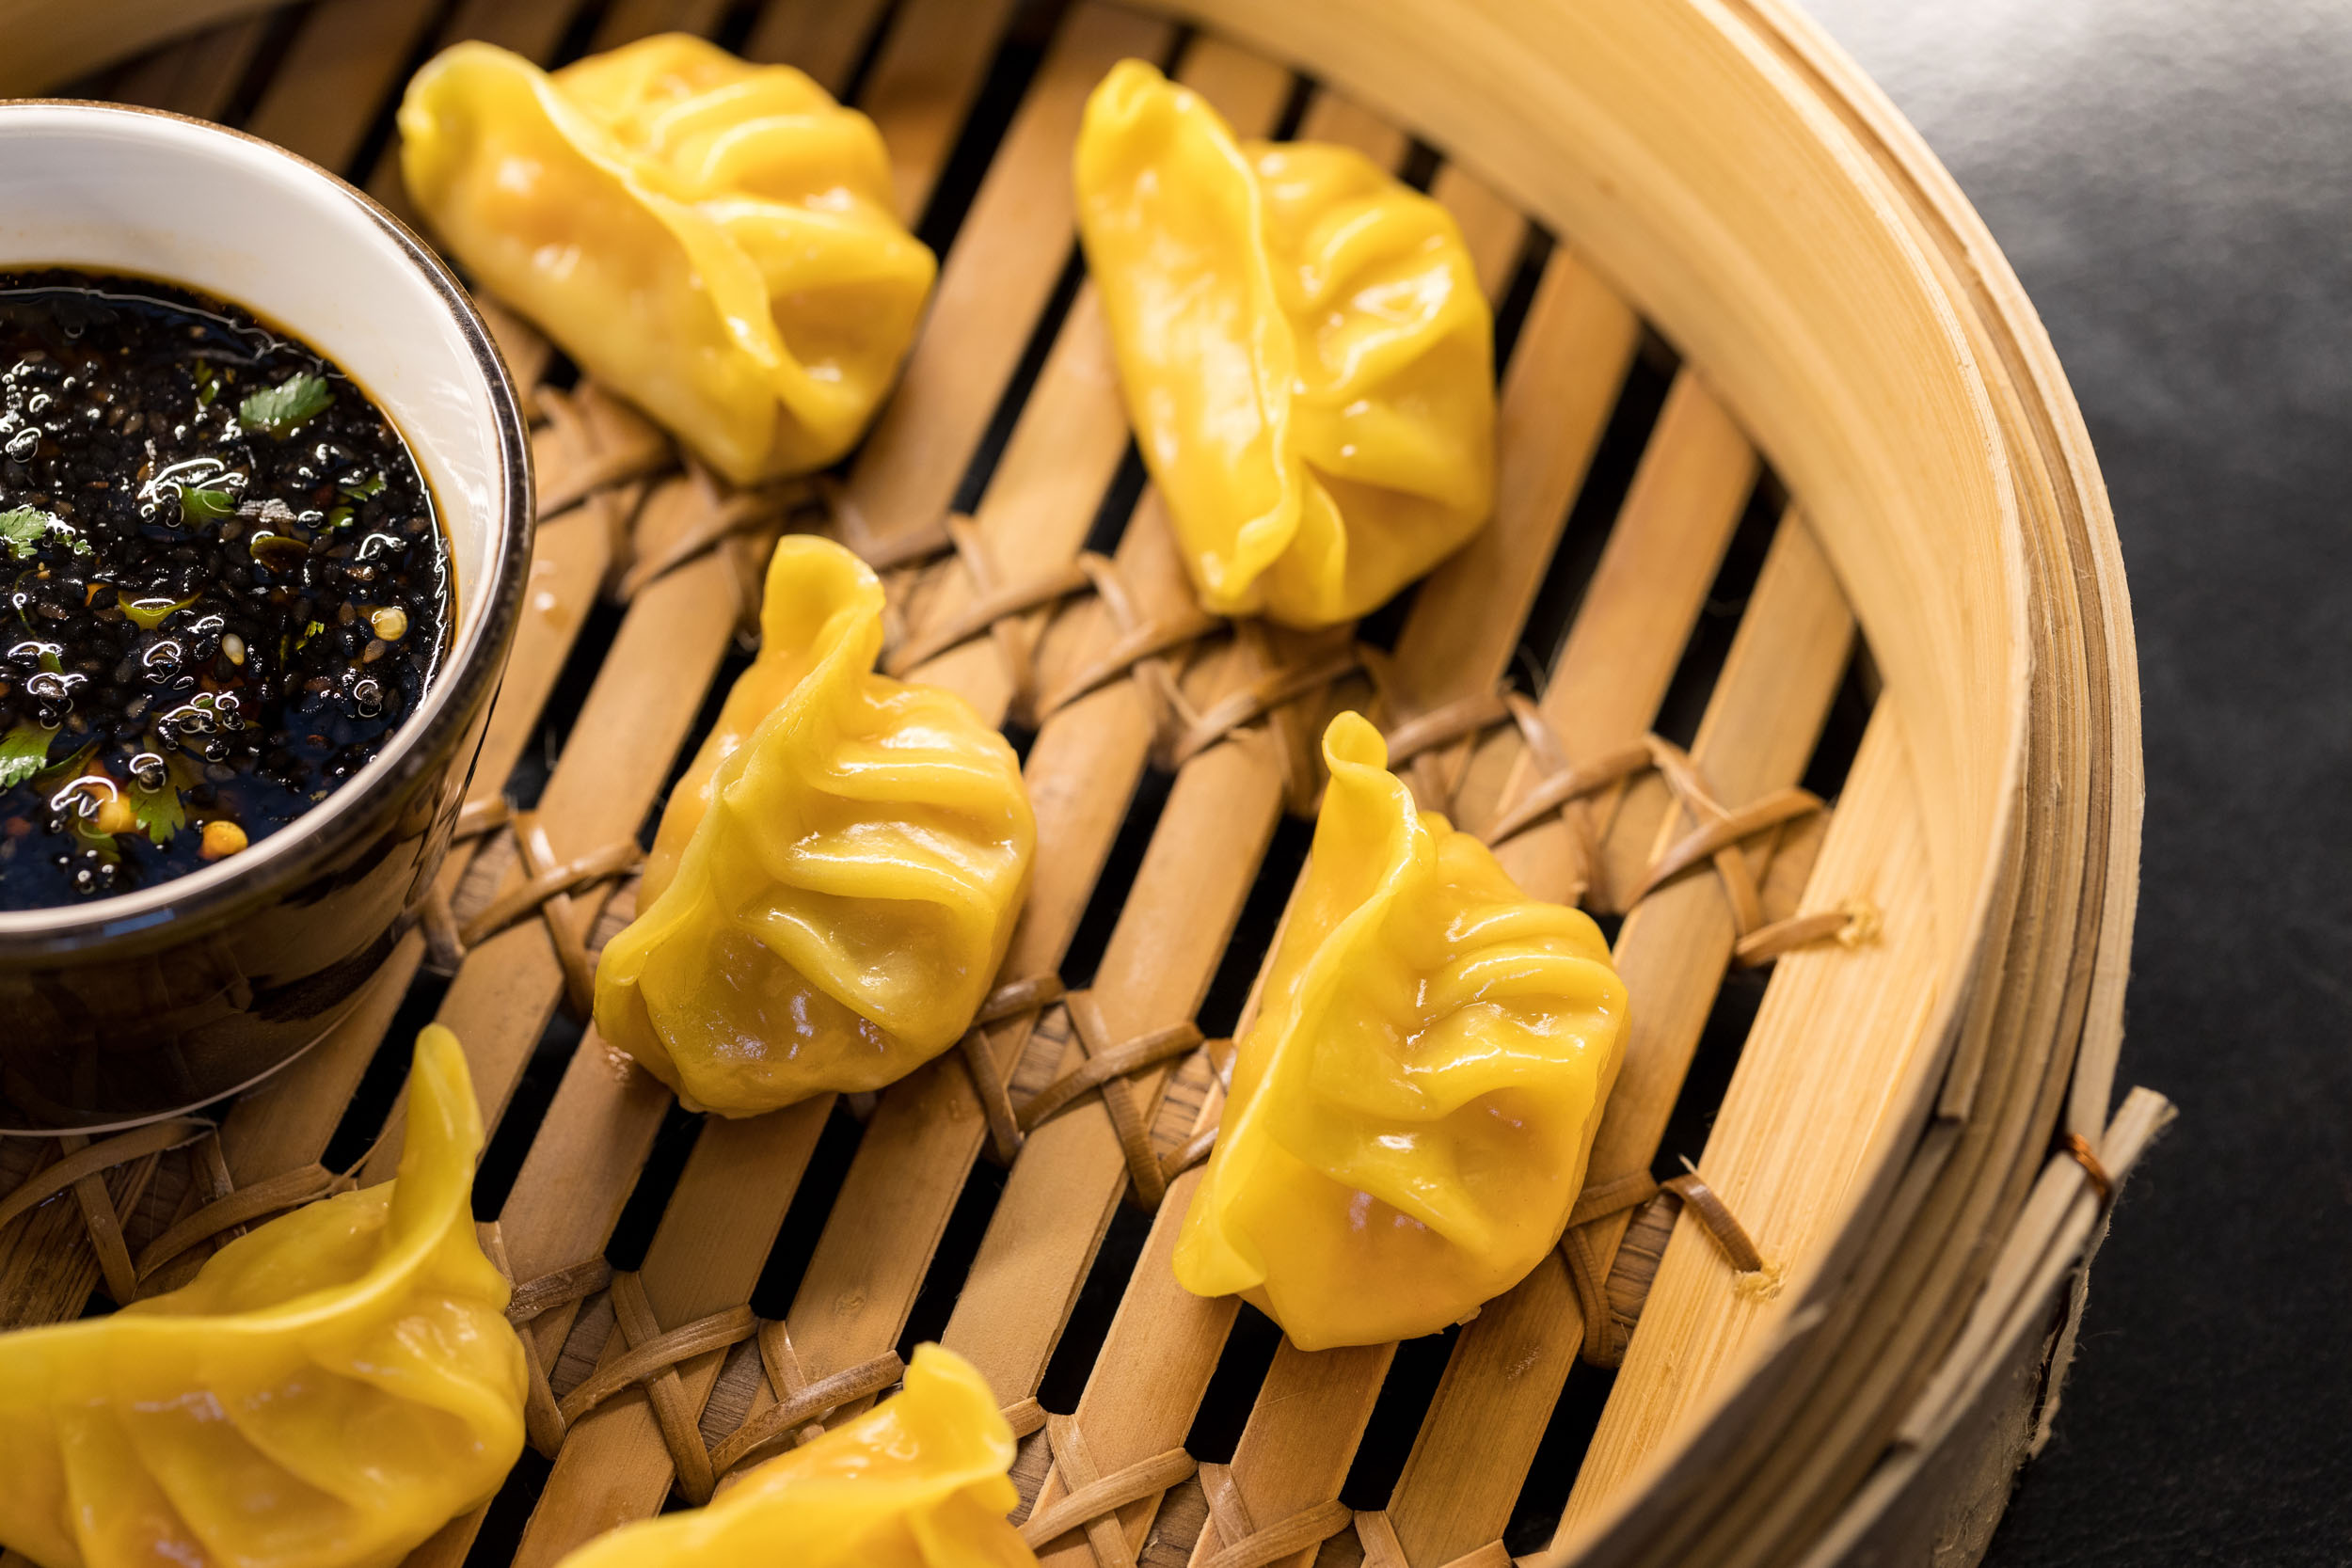 Food photography of dumplings